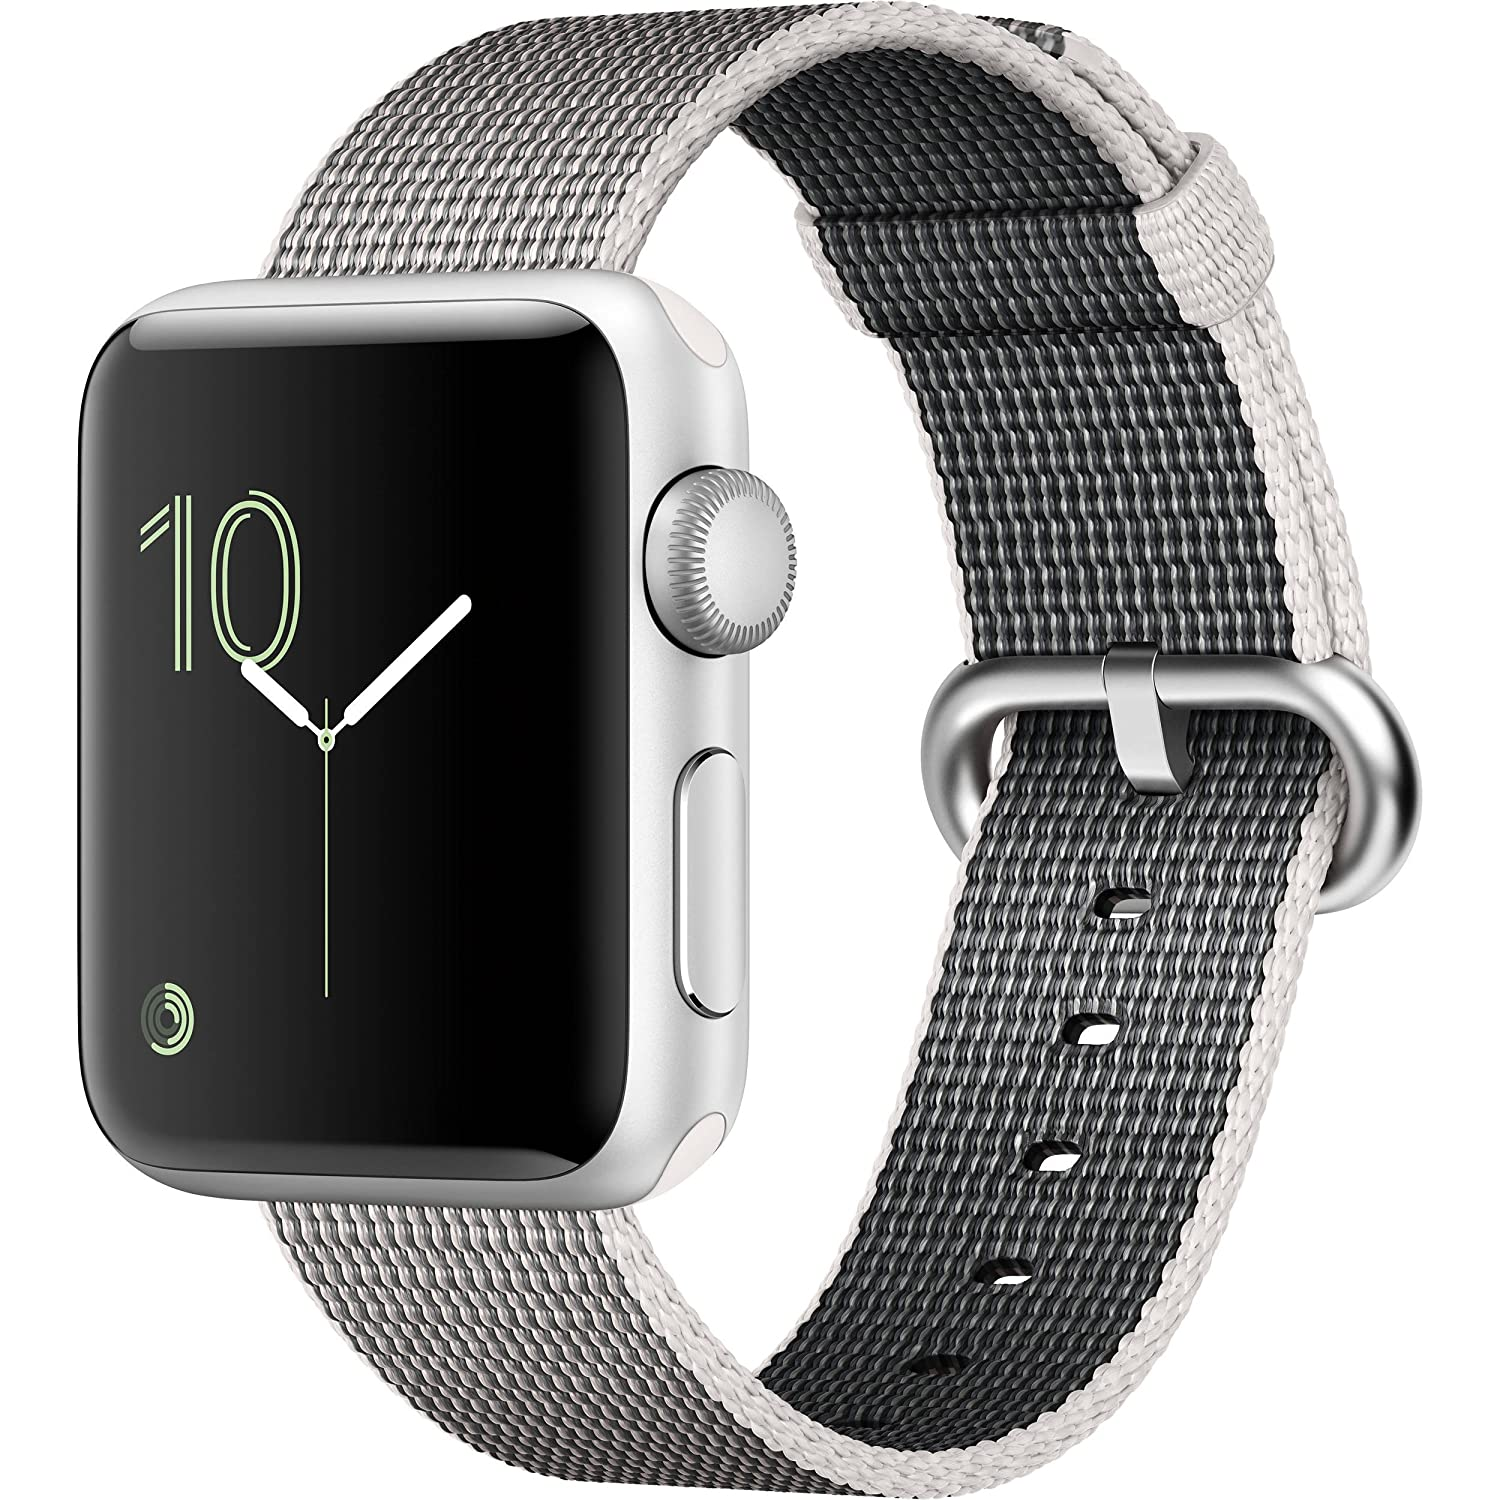 Apple Watch Series 2 Smartwatch 38mm Silver Aluminum Case Pearl Woven Nylon Band (Refurbished)